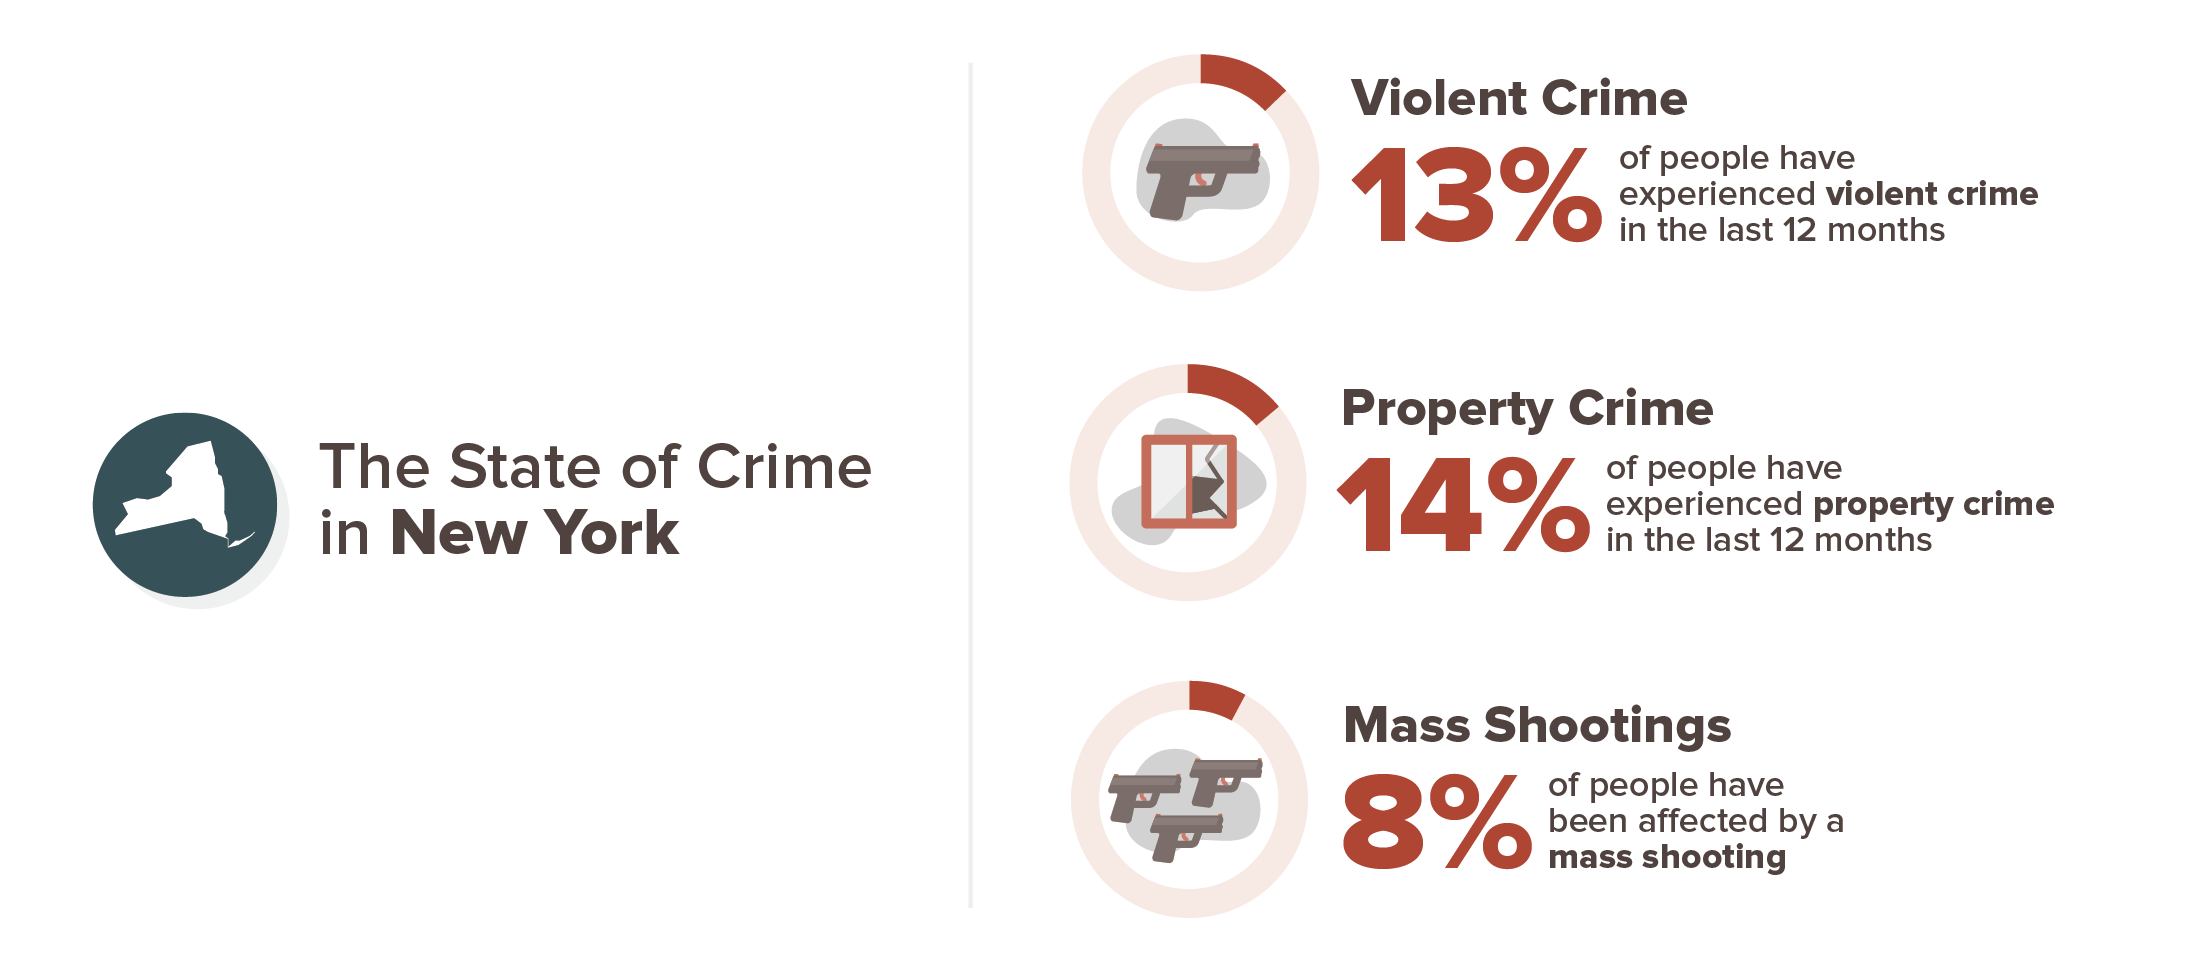 13 percent have experienced violent crime, 14 percent have experienced property crime, 8 percent have been affected by a mass shooting